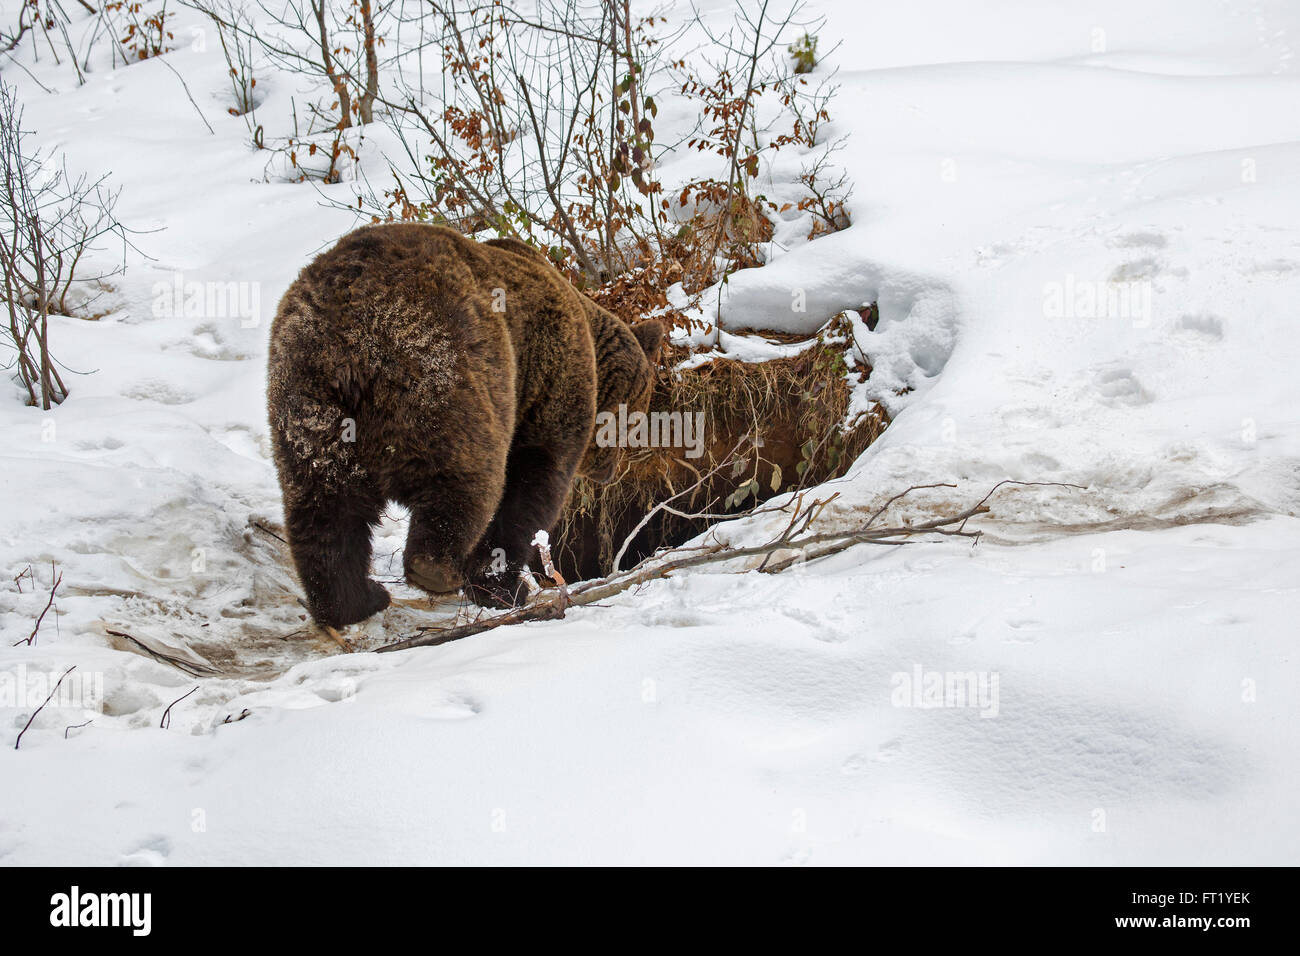 Brown bear (Ursus arctos) entering den in the snow in autumn / winter Stock Photo